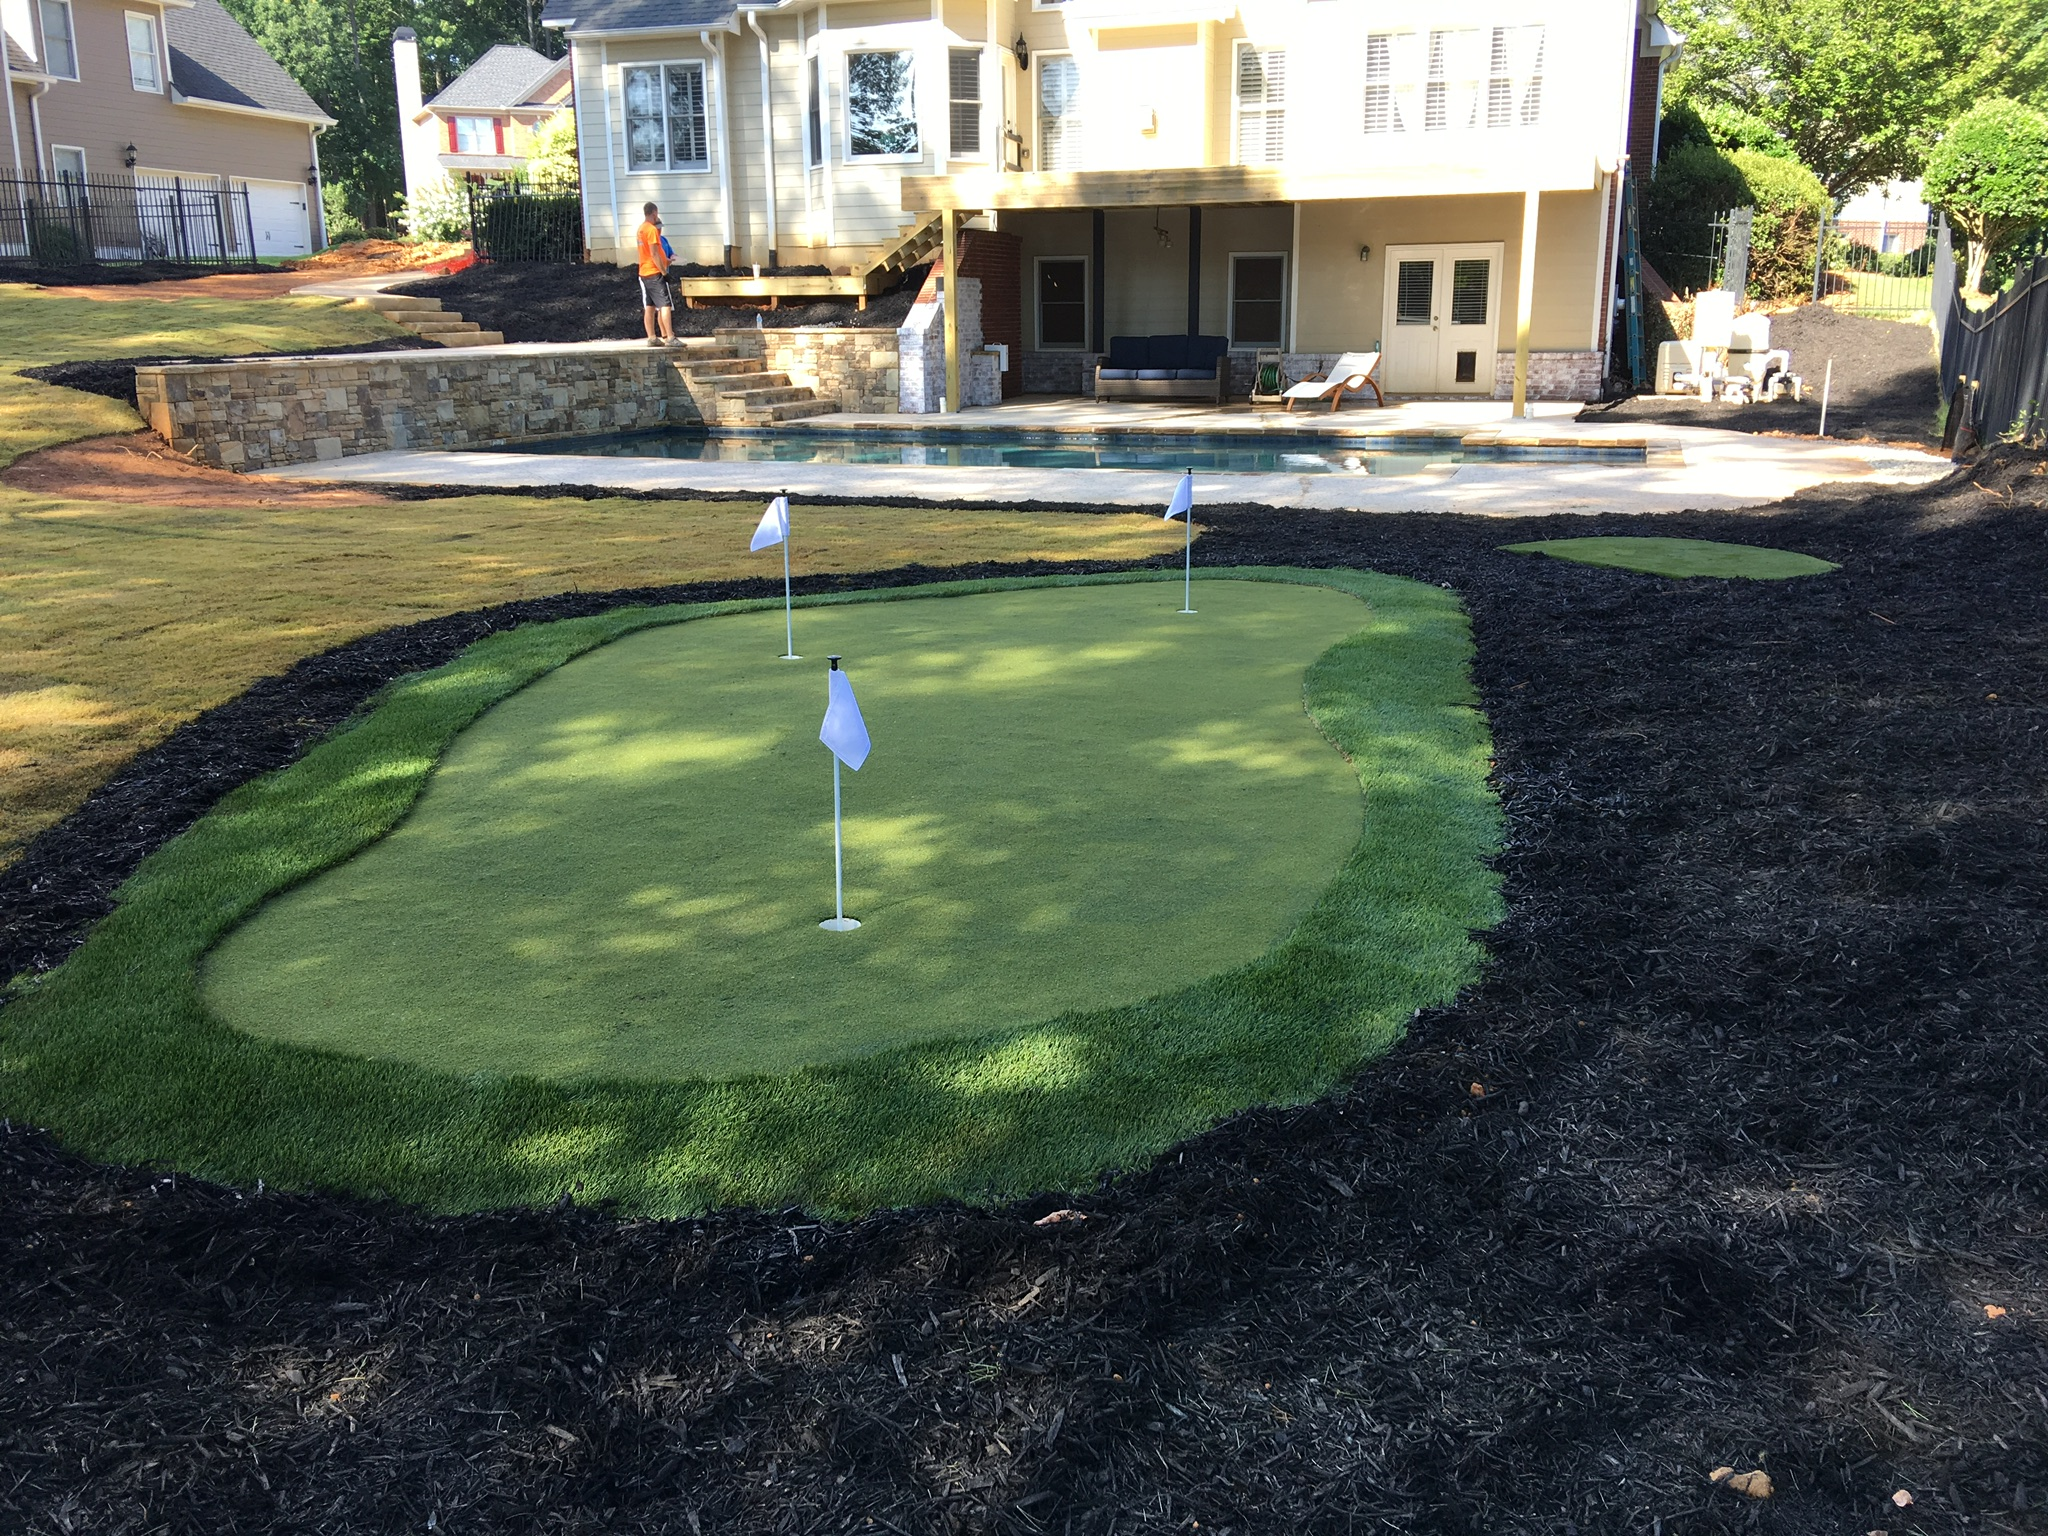 residential Indiana putting green